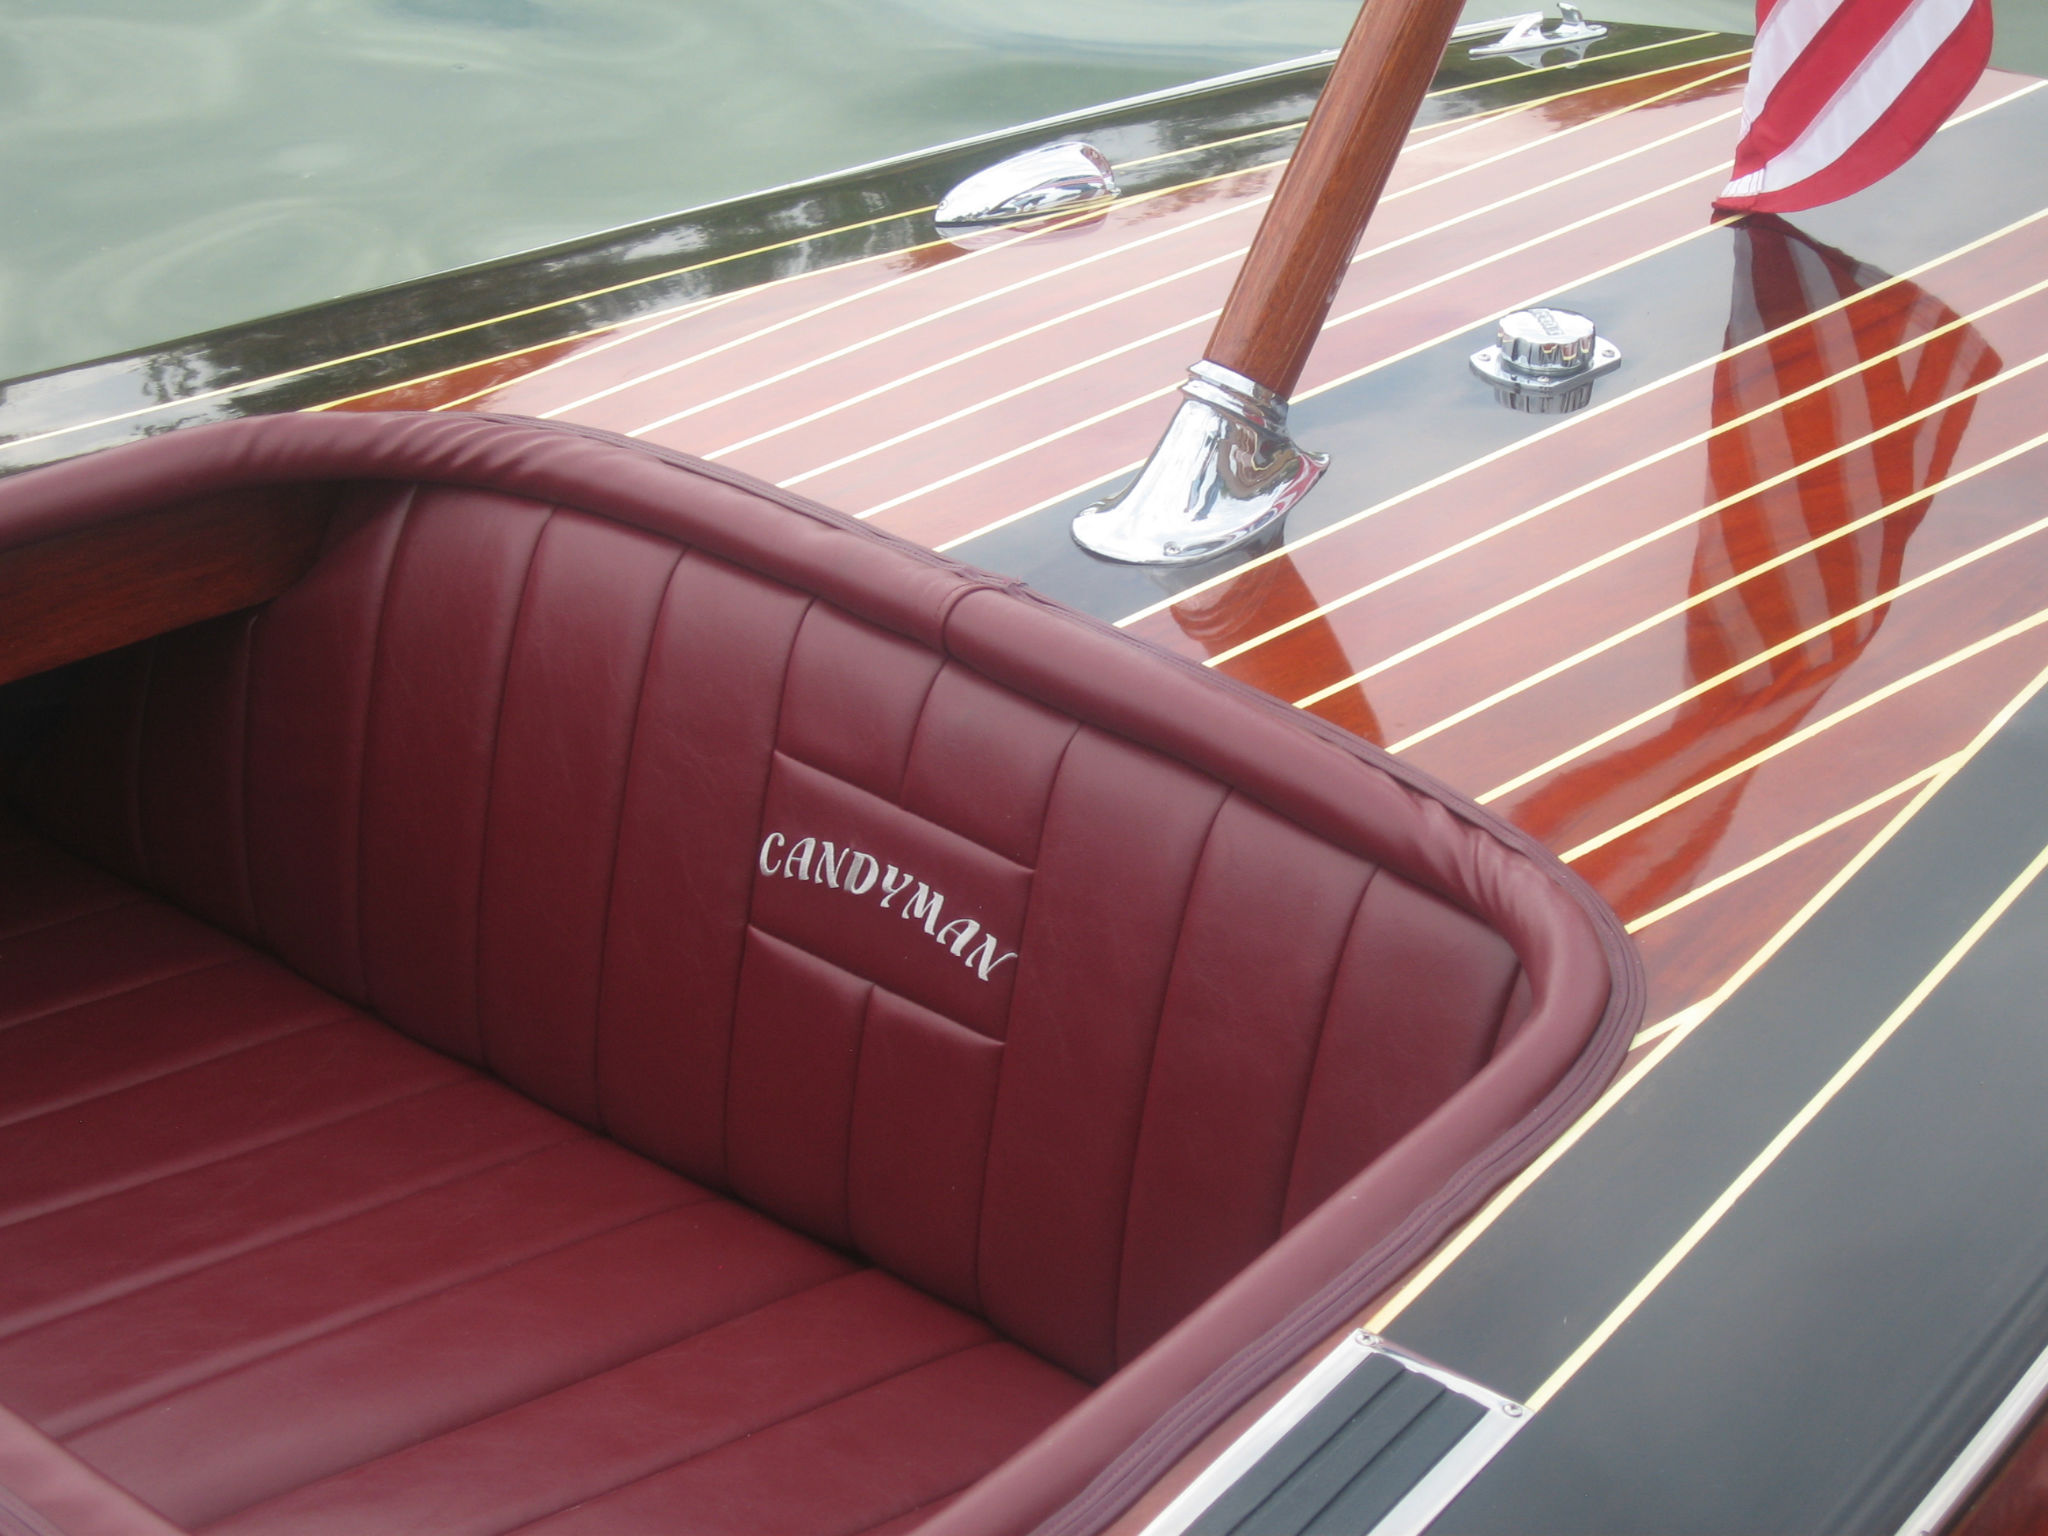 MONTE CARLO named Candyman by Dale Brevik - Polson, MT - Boatbuilders Site on Glen-L.com